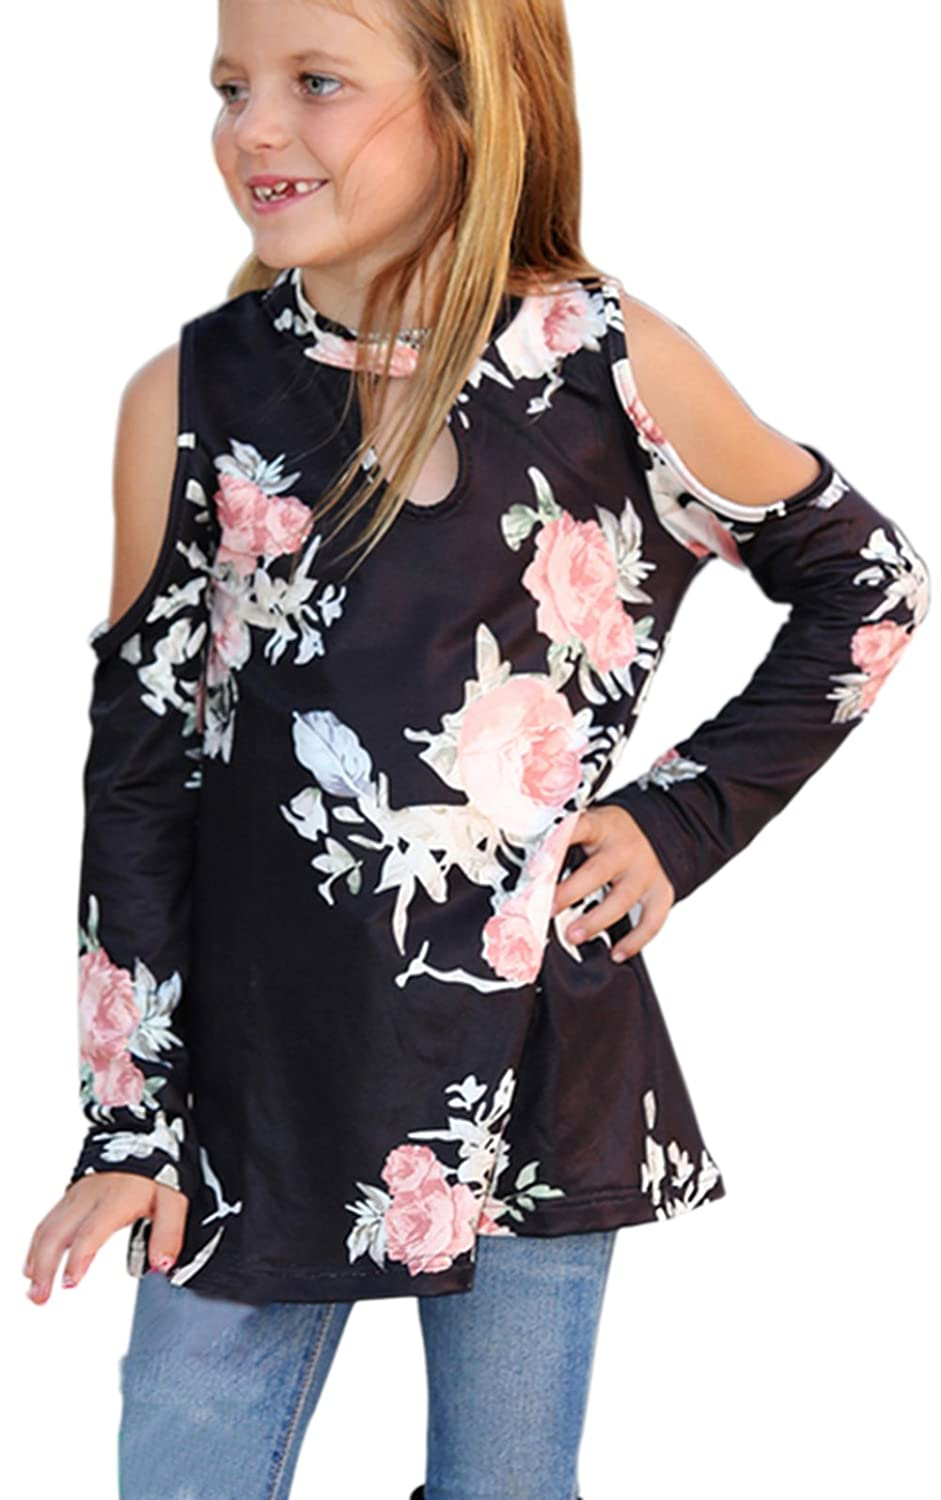 OAKBaby Mommy and Me Long Sleeve Loose Blouse Floral Printed Family Matching Outfits